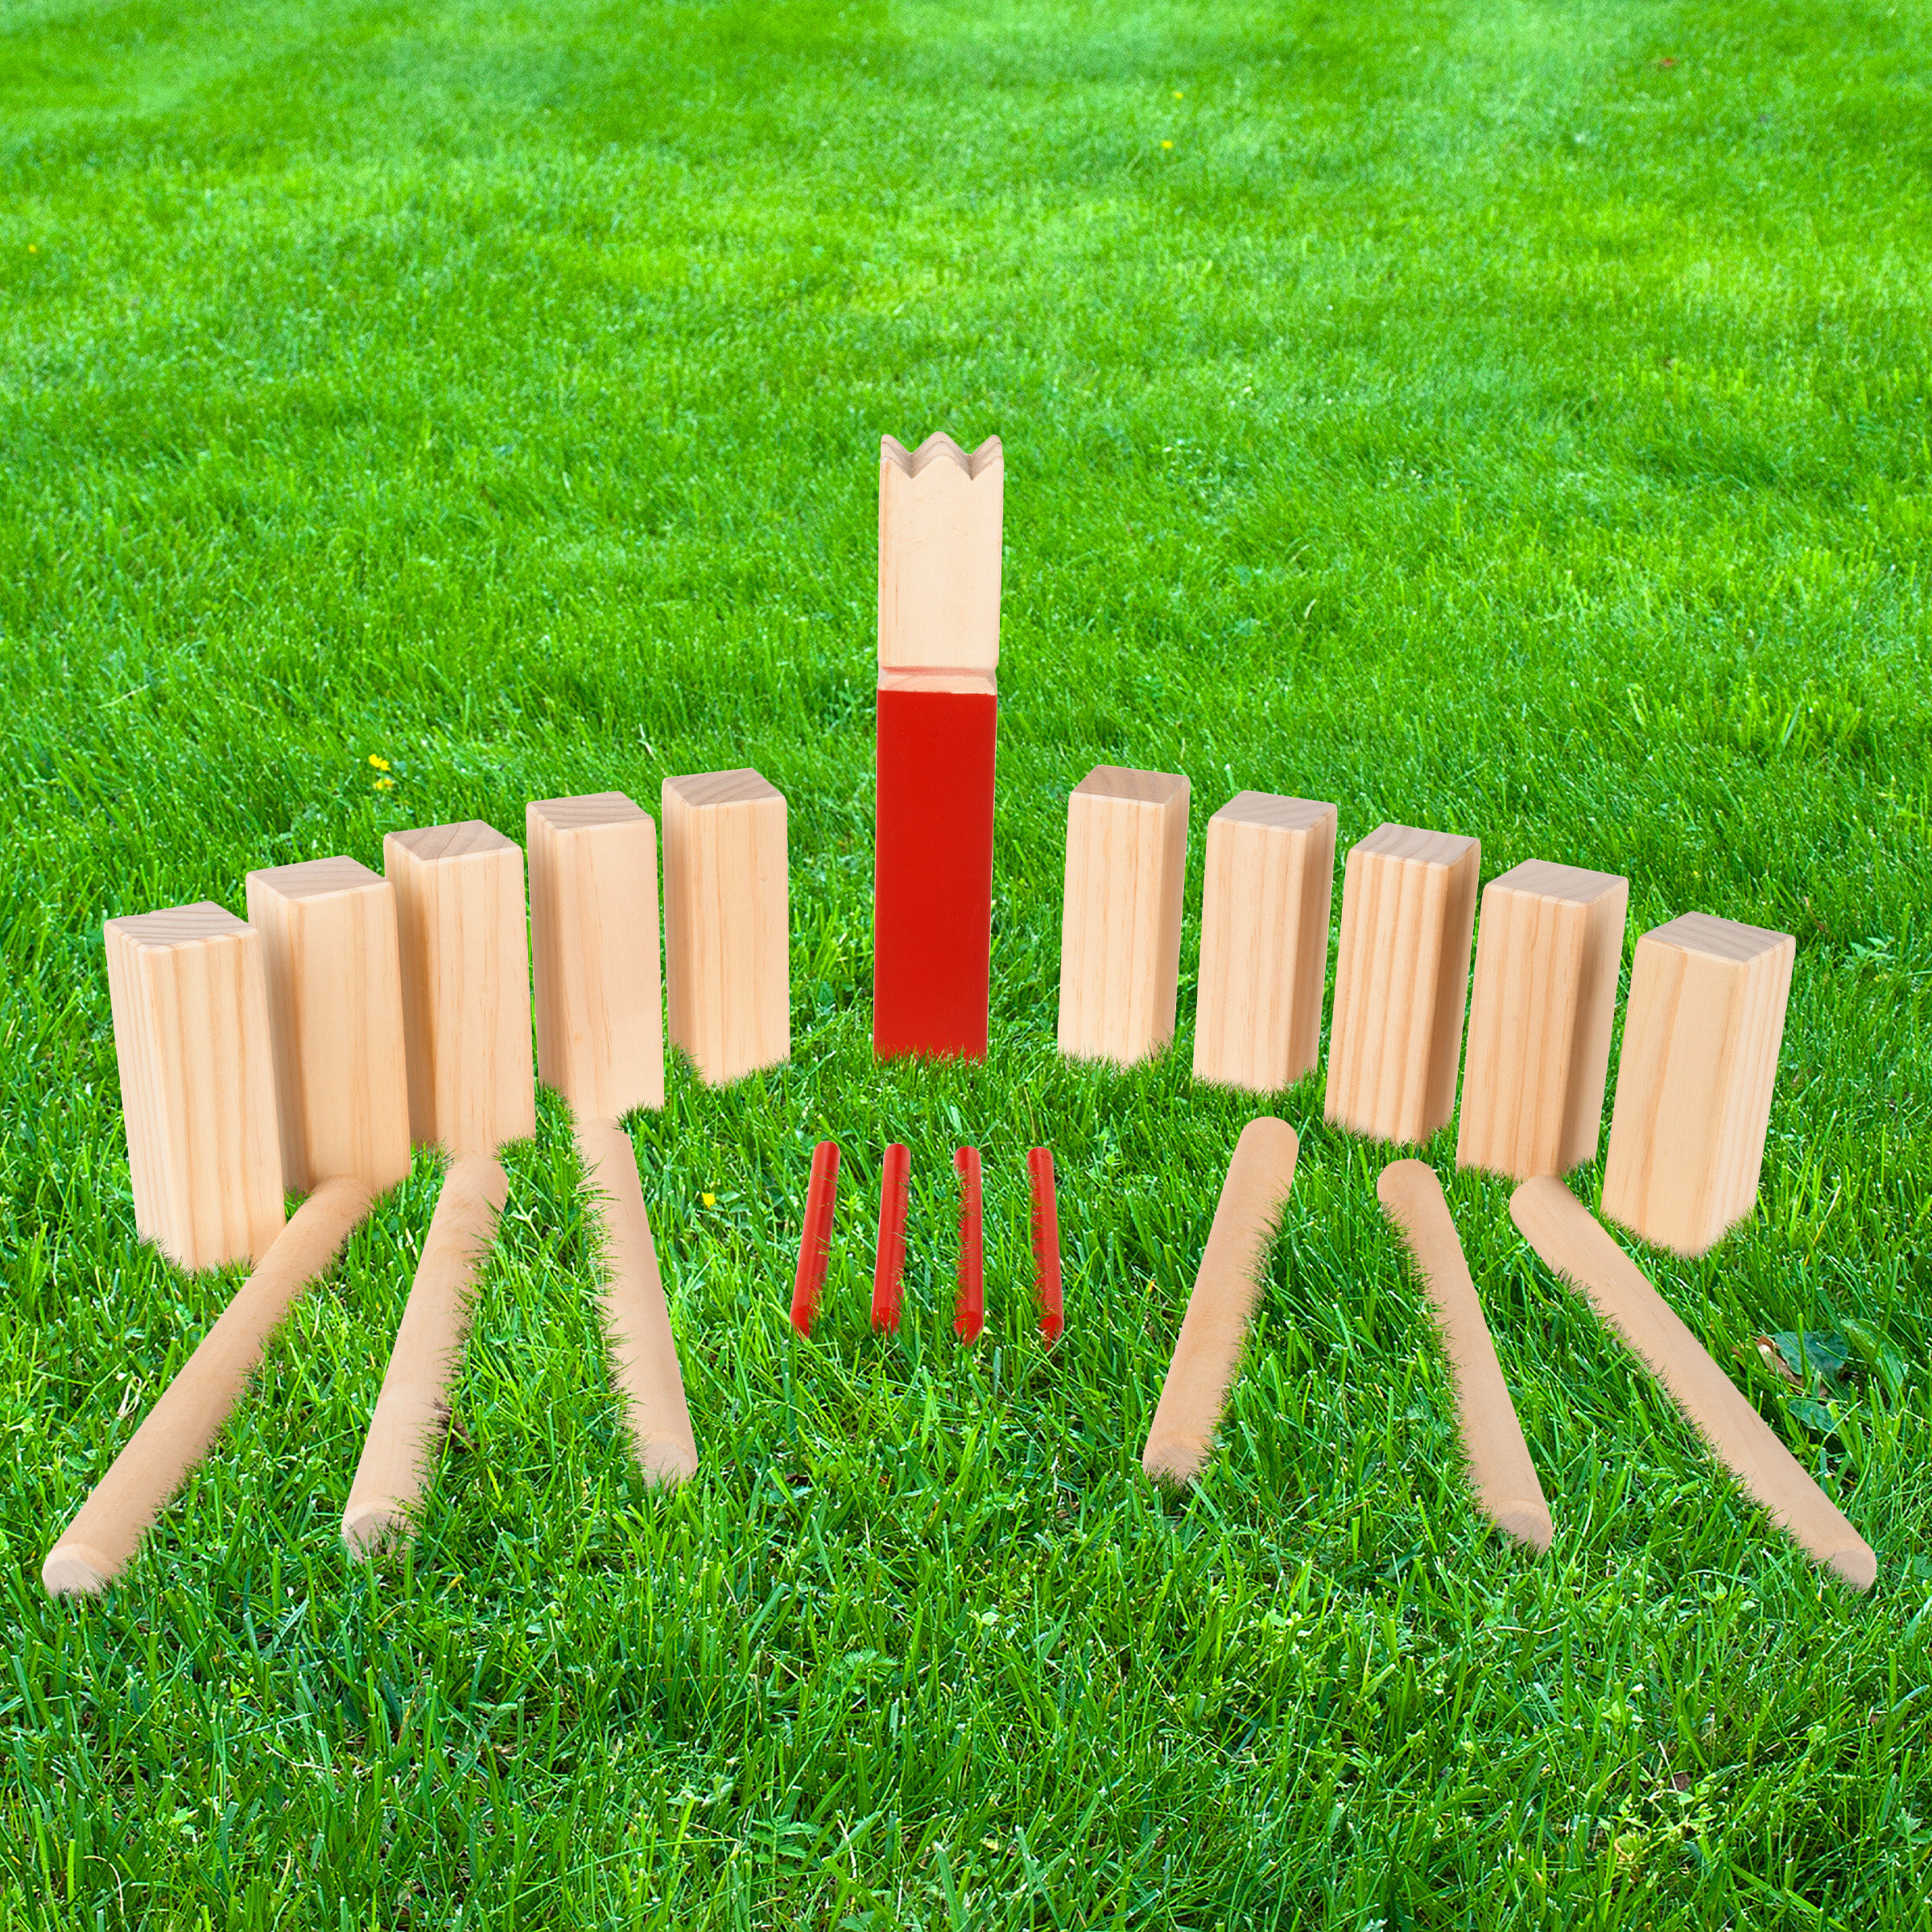 Kubb Viking Chess Lawn Game All Wood Back Yard Games Kubb Game Premium Set Beach Sporting Goods Other Backyard Games Romeinformation It